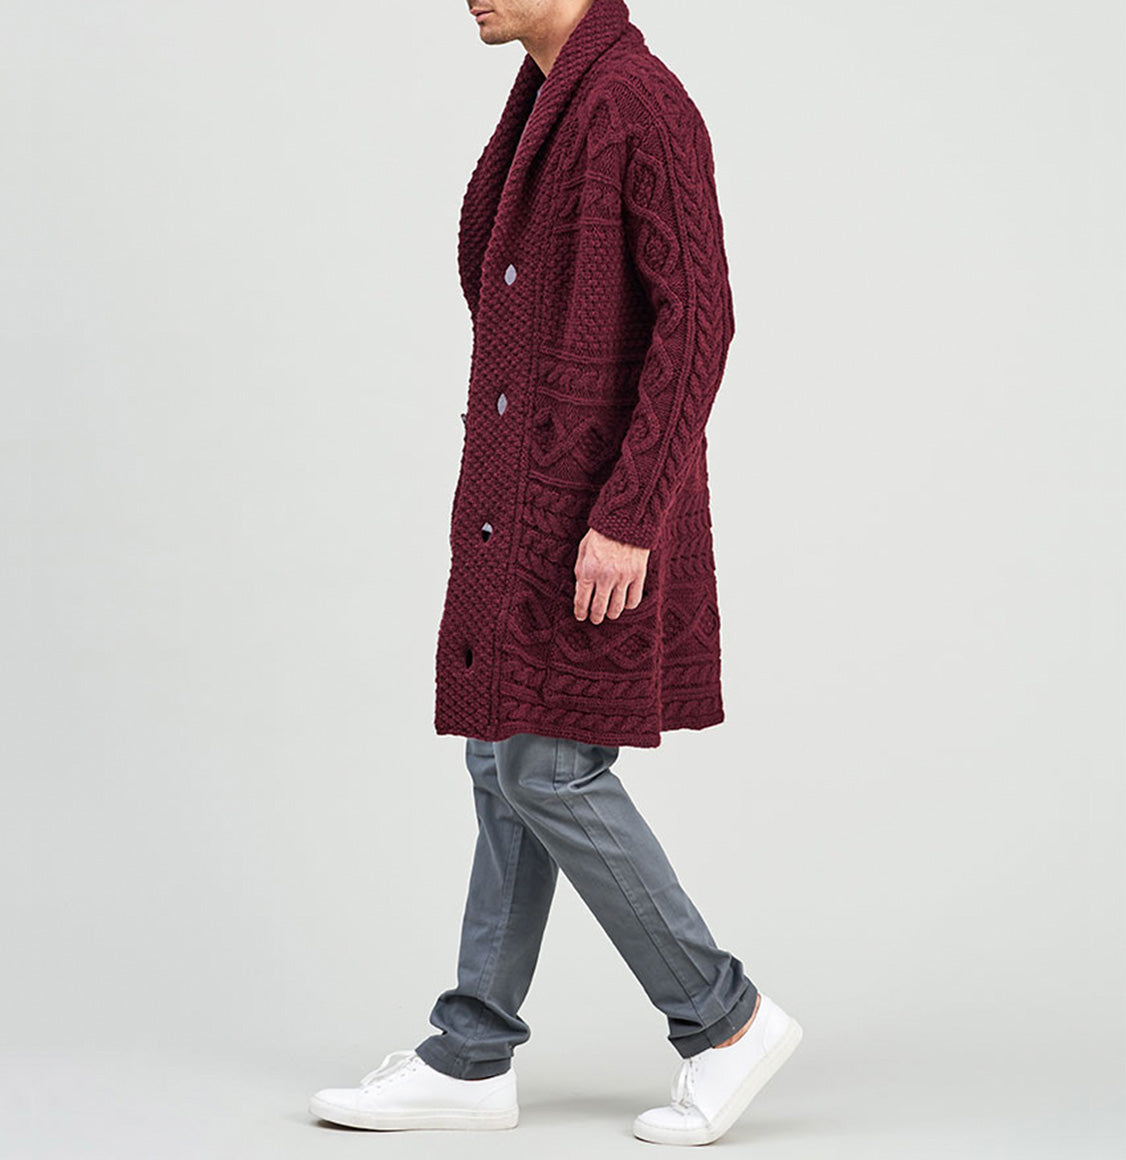 Longline Shawl Cable Wool Knitwear Burgundy | The Project Garments - C